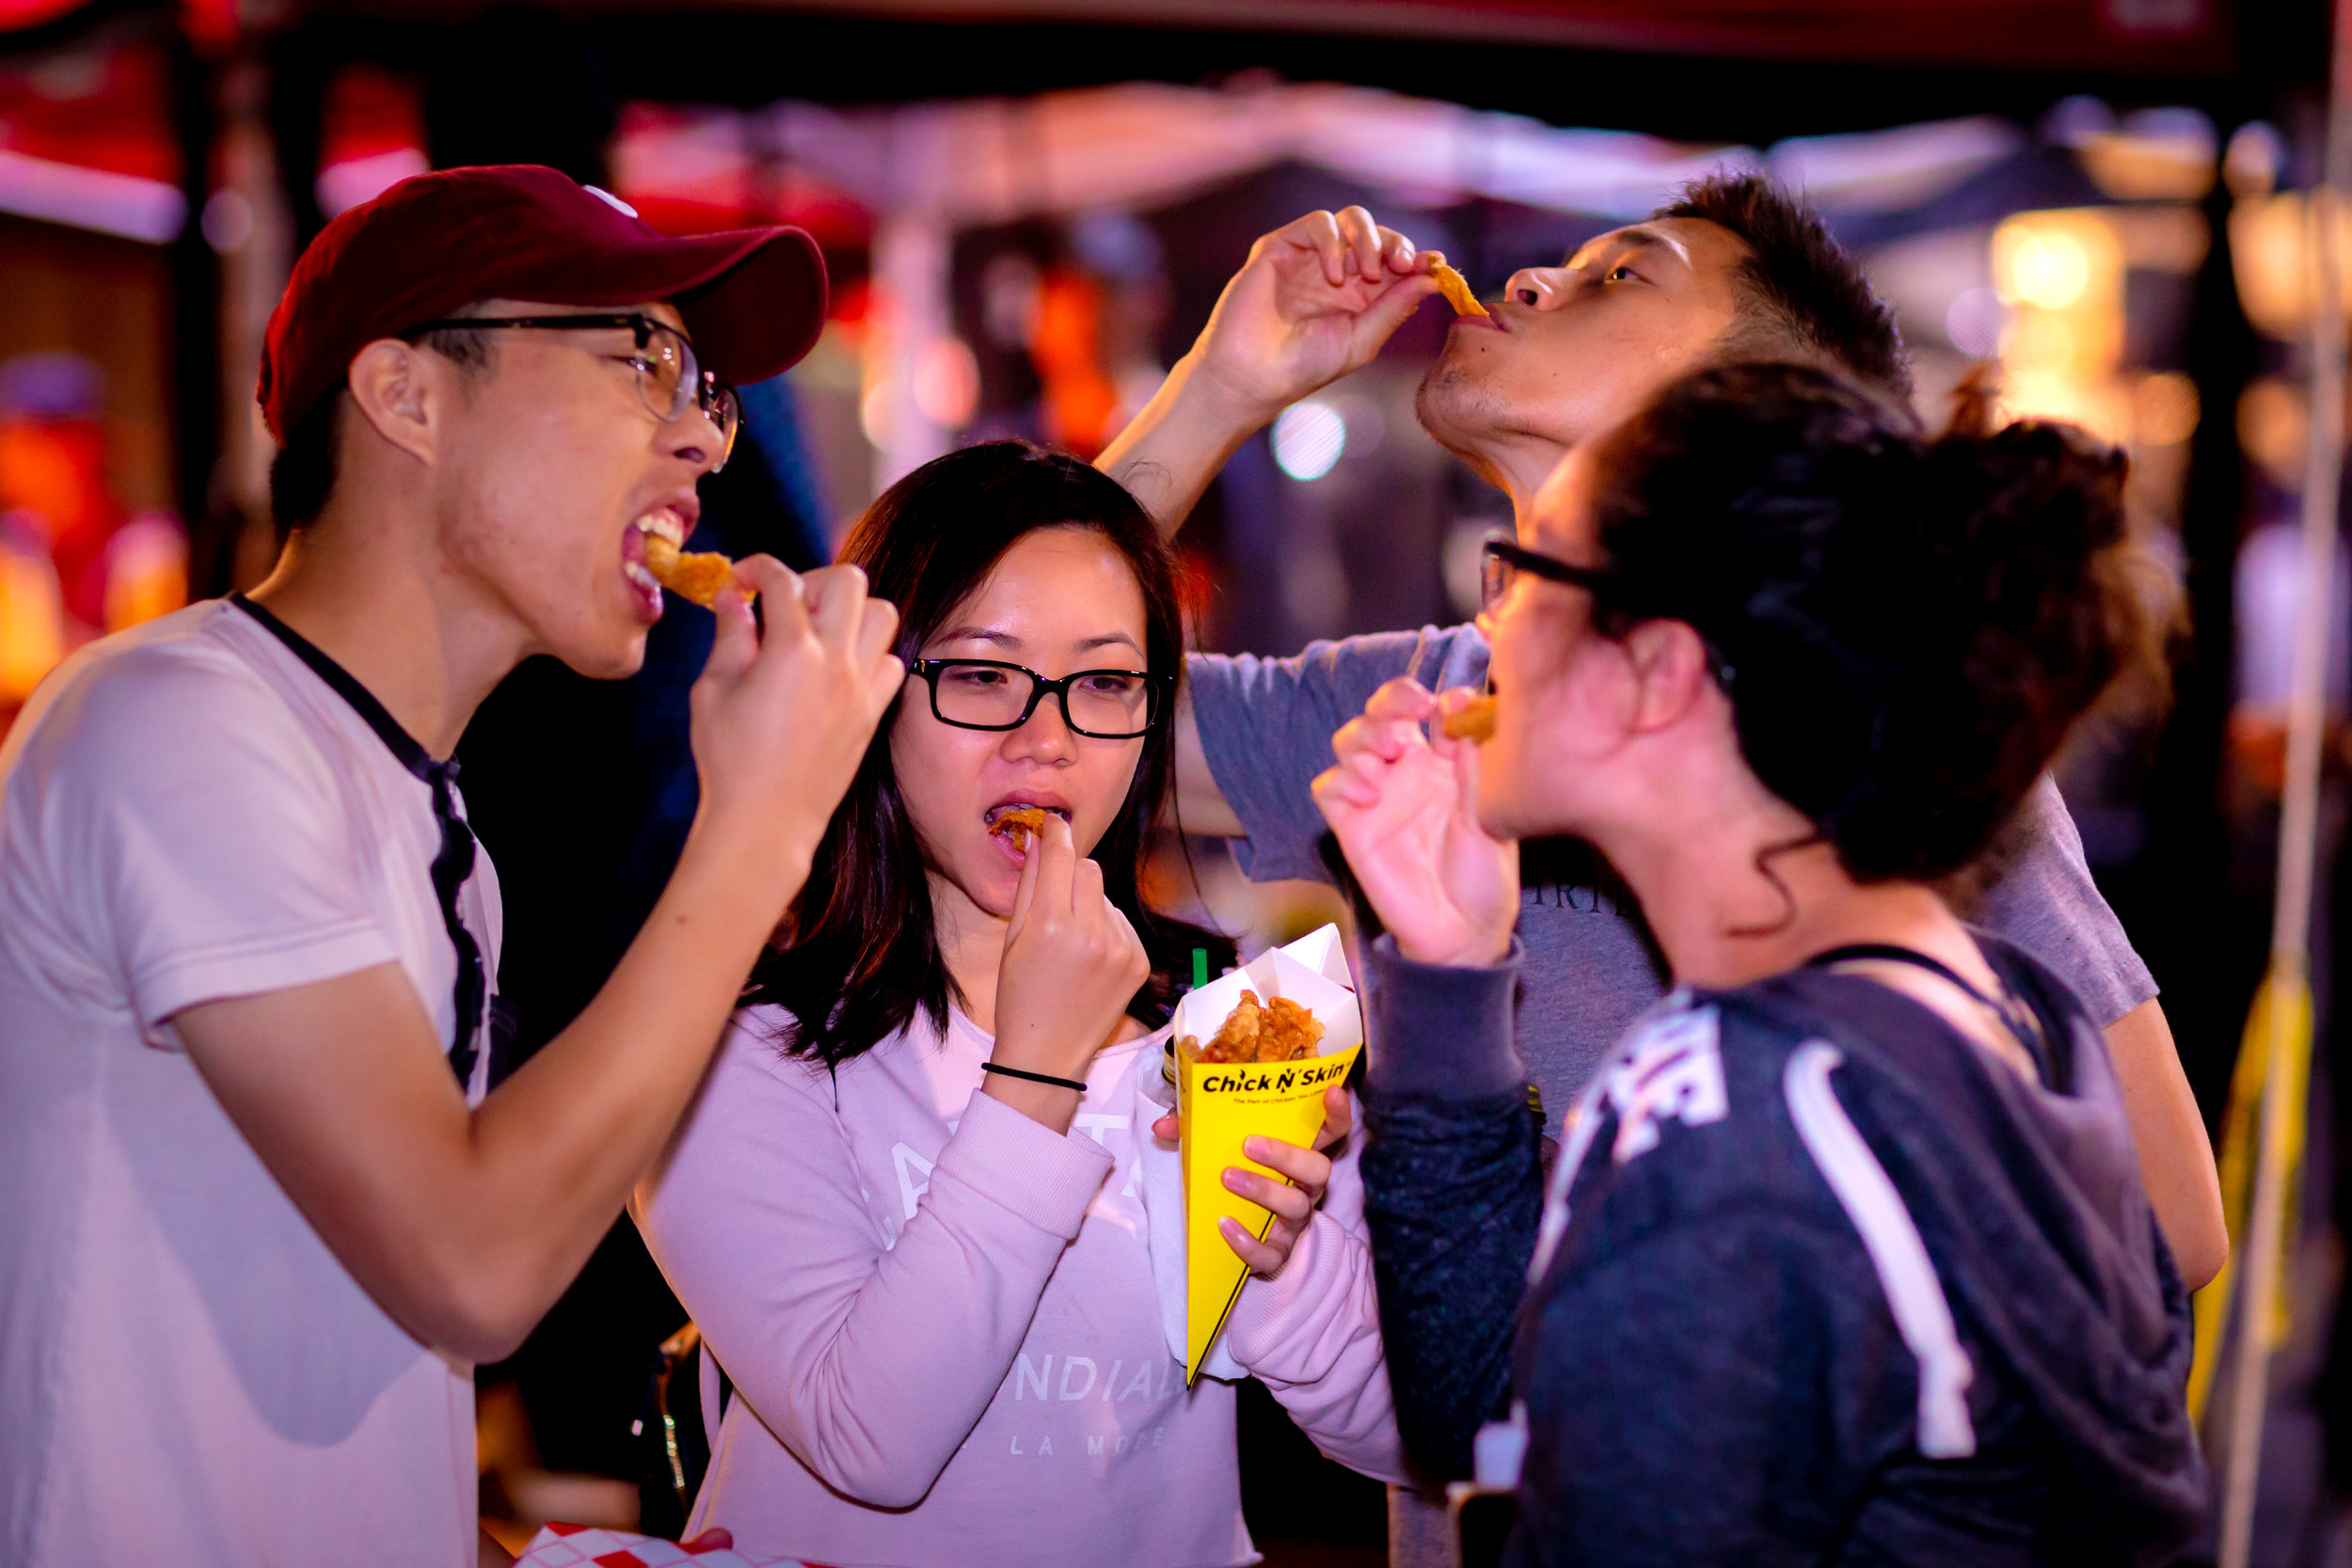 Trying flavored fried chicken skins from vendor  Chick N' Skin . Photo by John Truong.